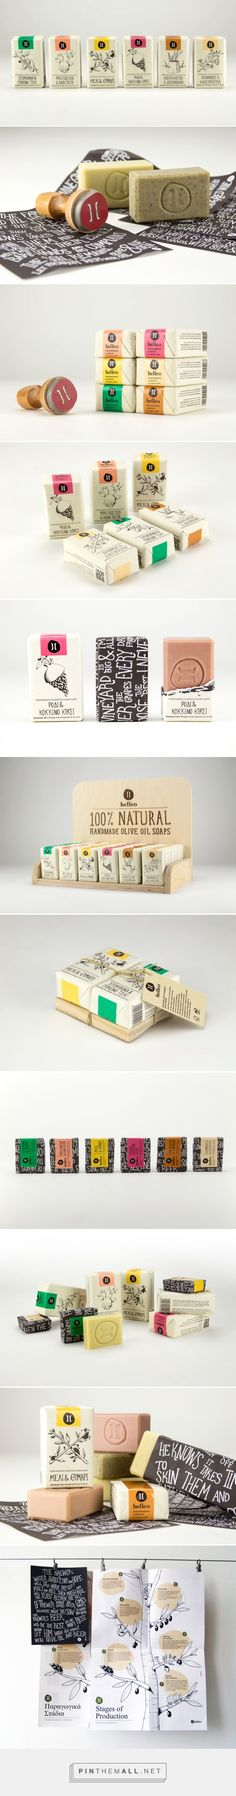 Packaging Design for 'Helleo' Natural Soaps